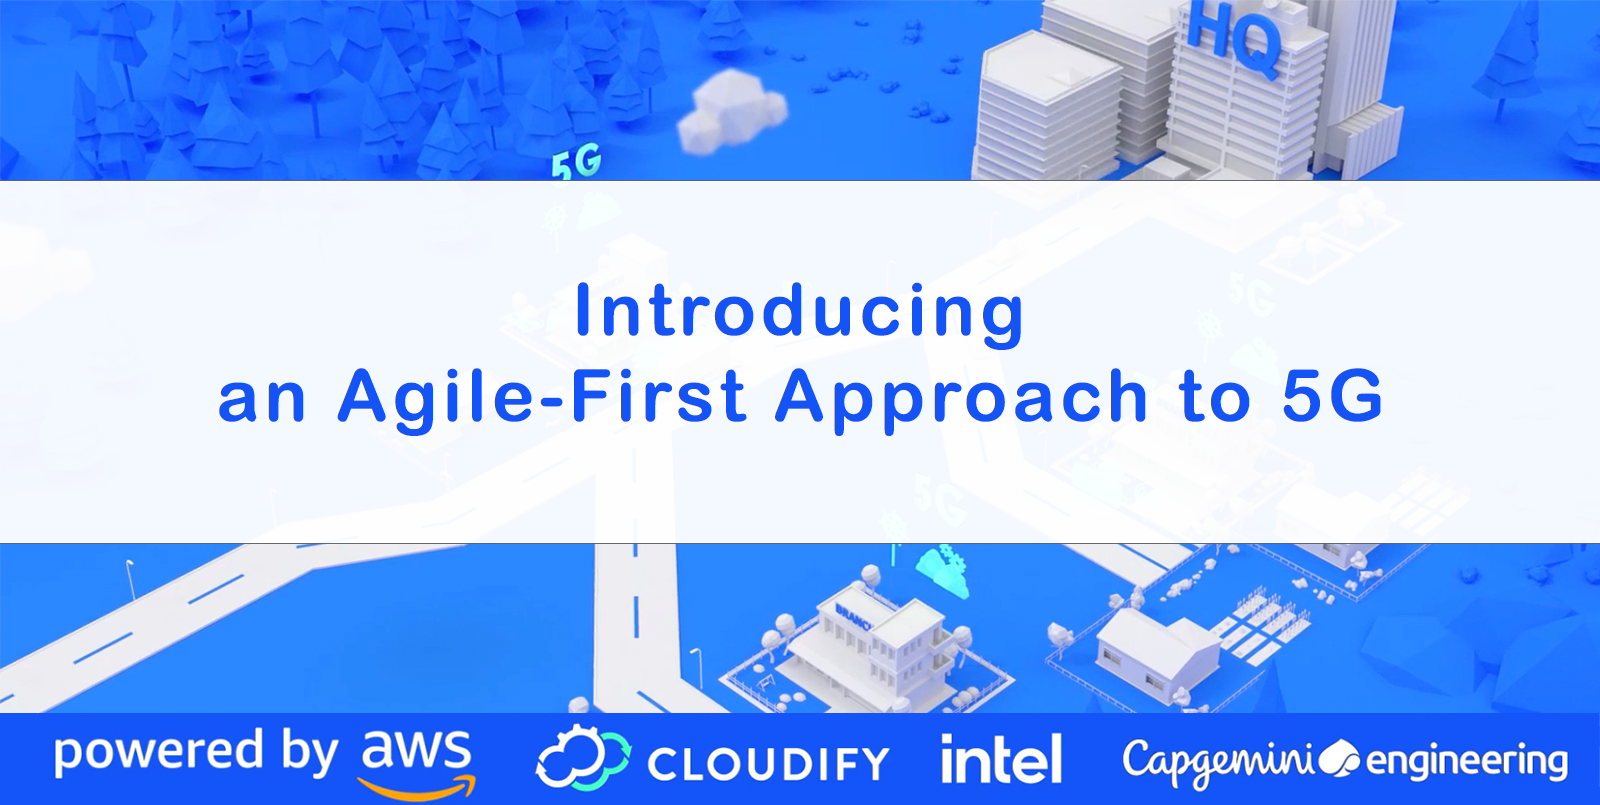 Introducing the Agile-First Approach to 5G Orchestration